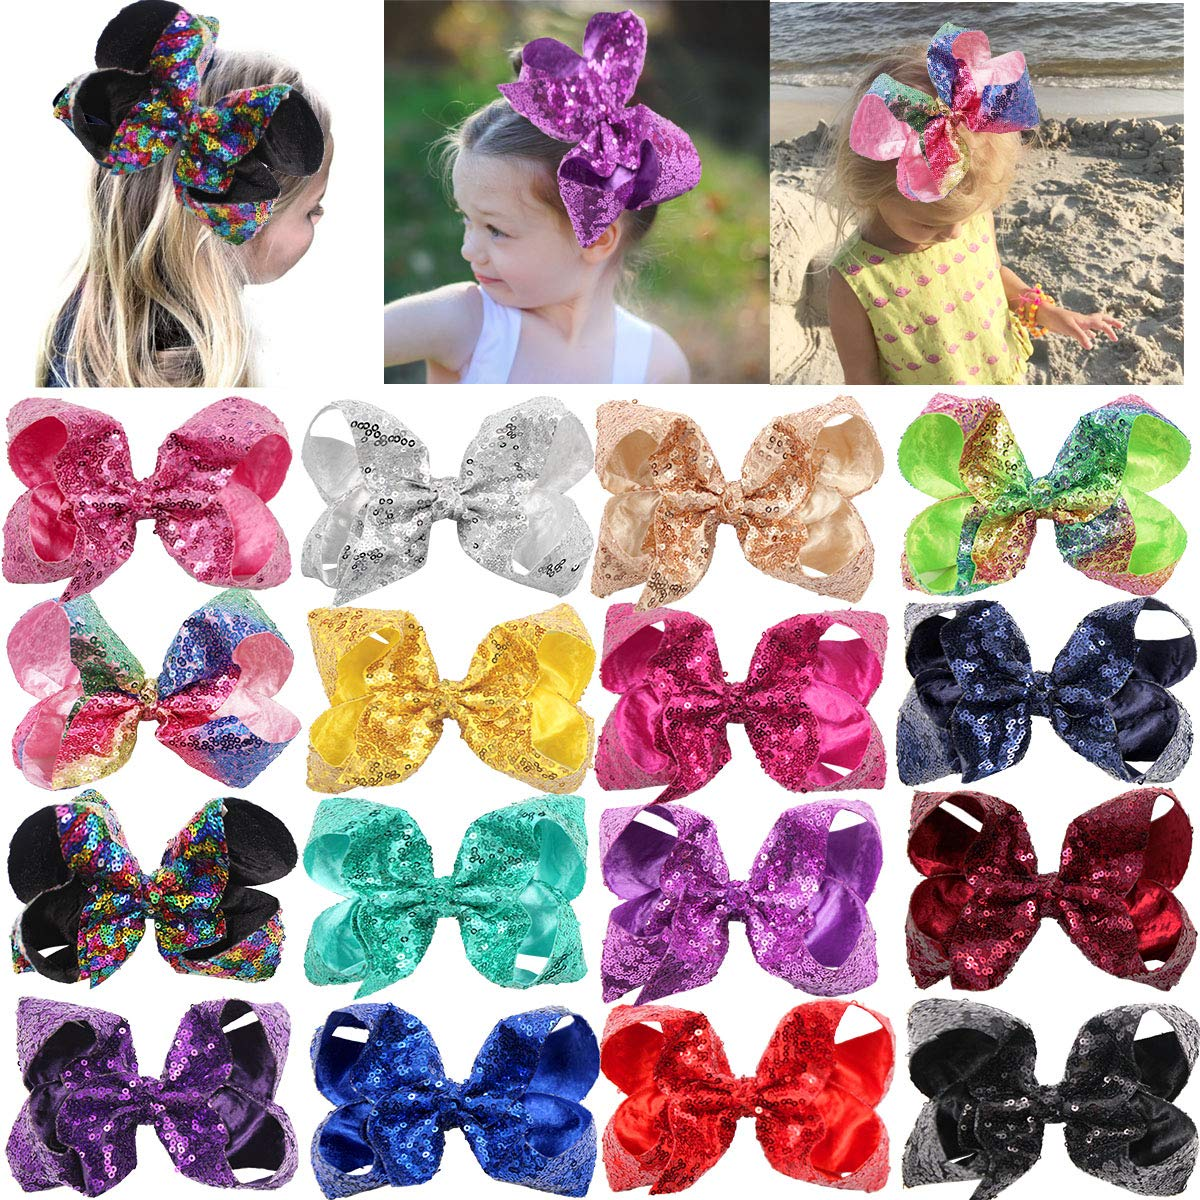 DeD 16 Pieces Large Big Sequin Hiar Bows with Clips 8 Inch Sparly Rainbow Hair Bows Clips for Toddlers Teens Girls by DED